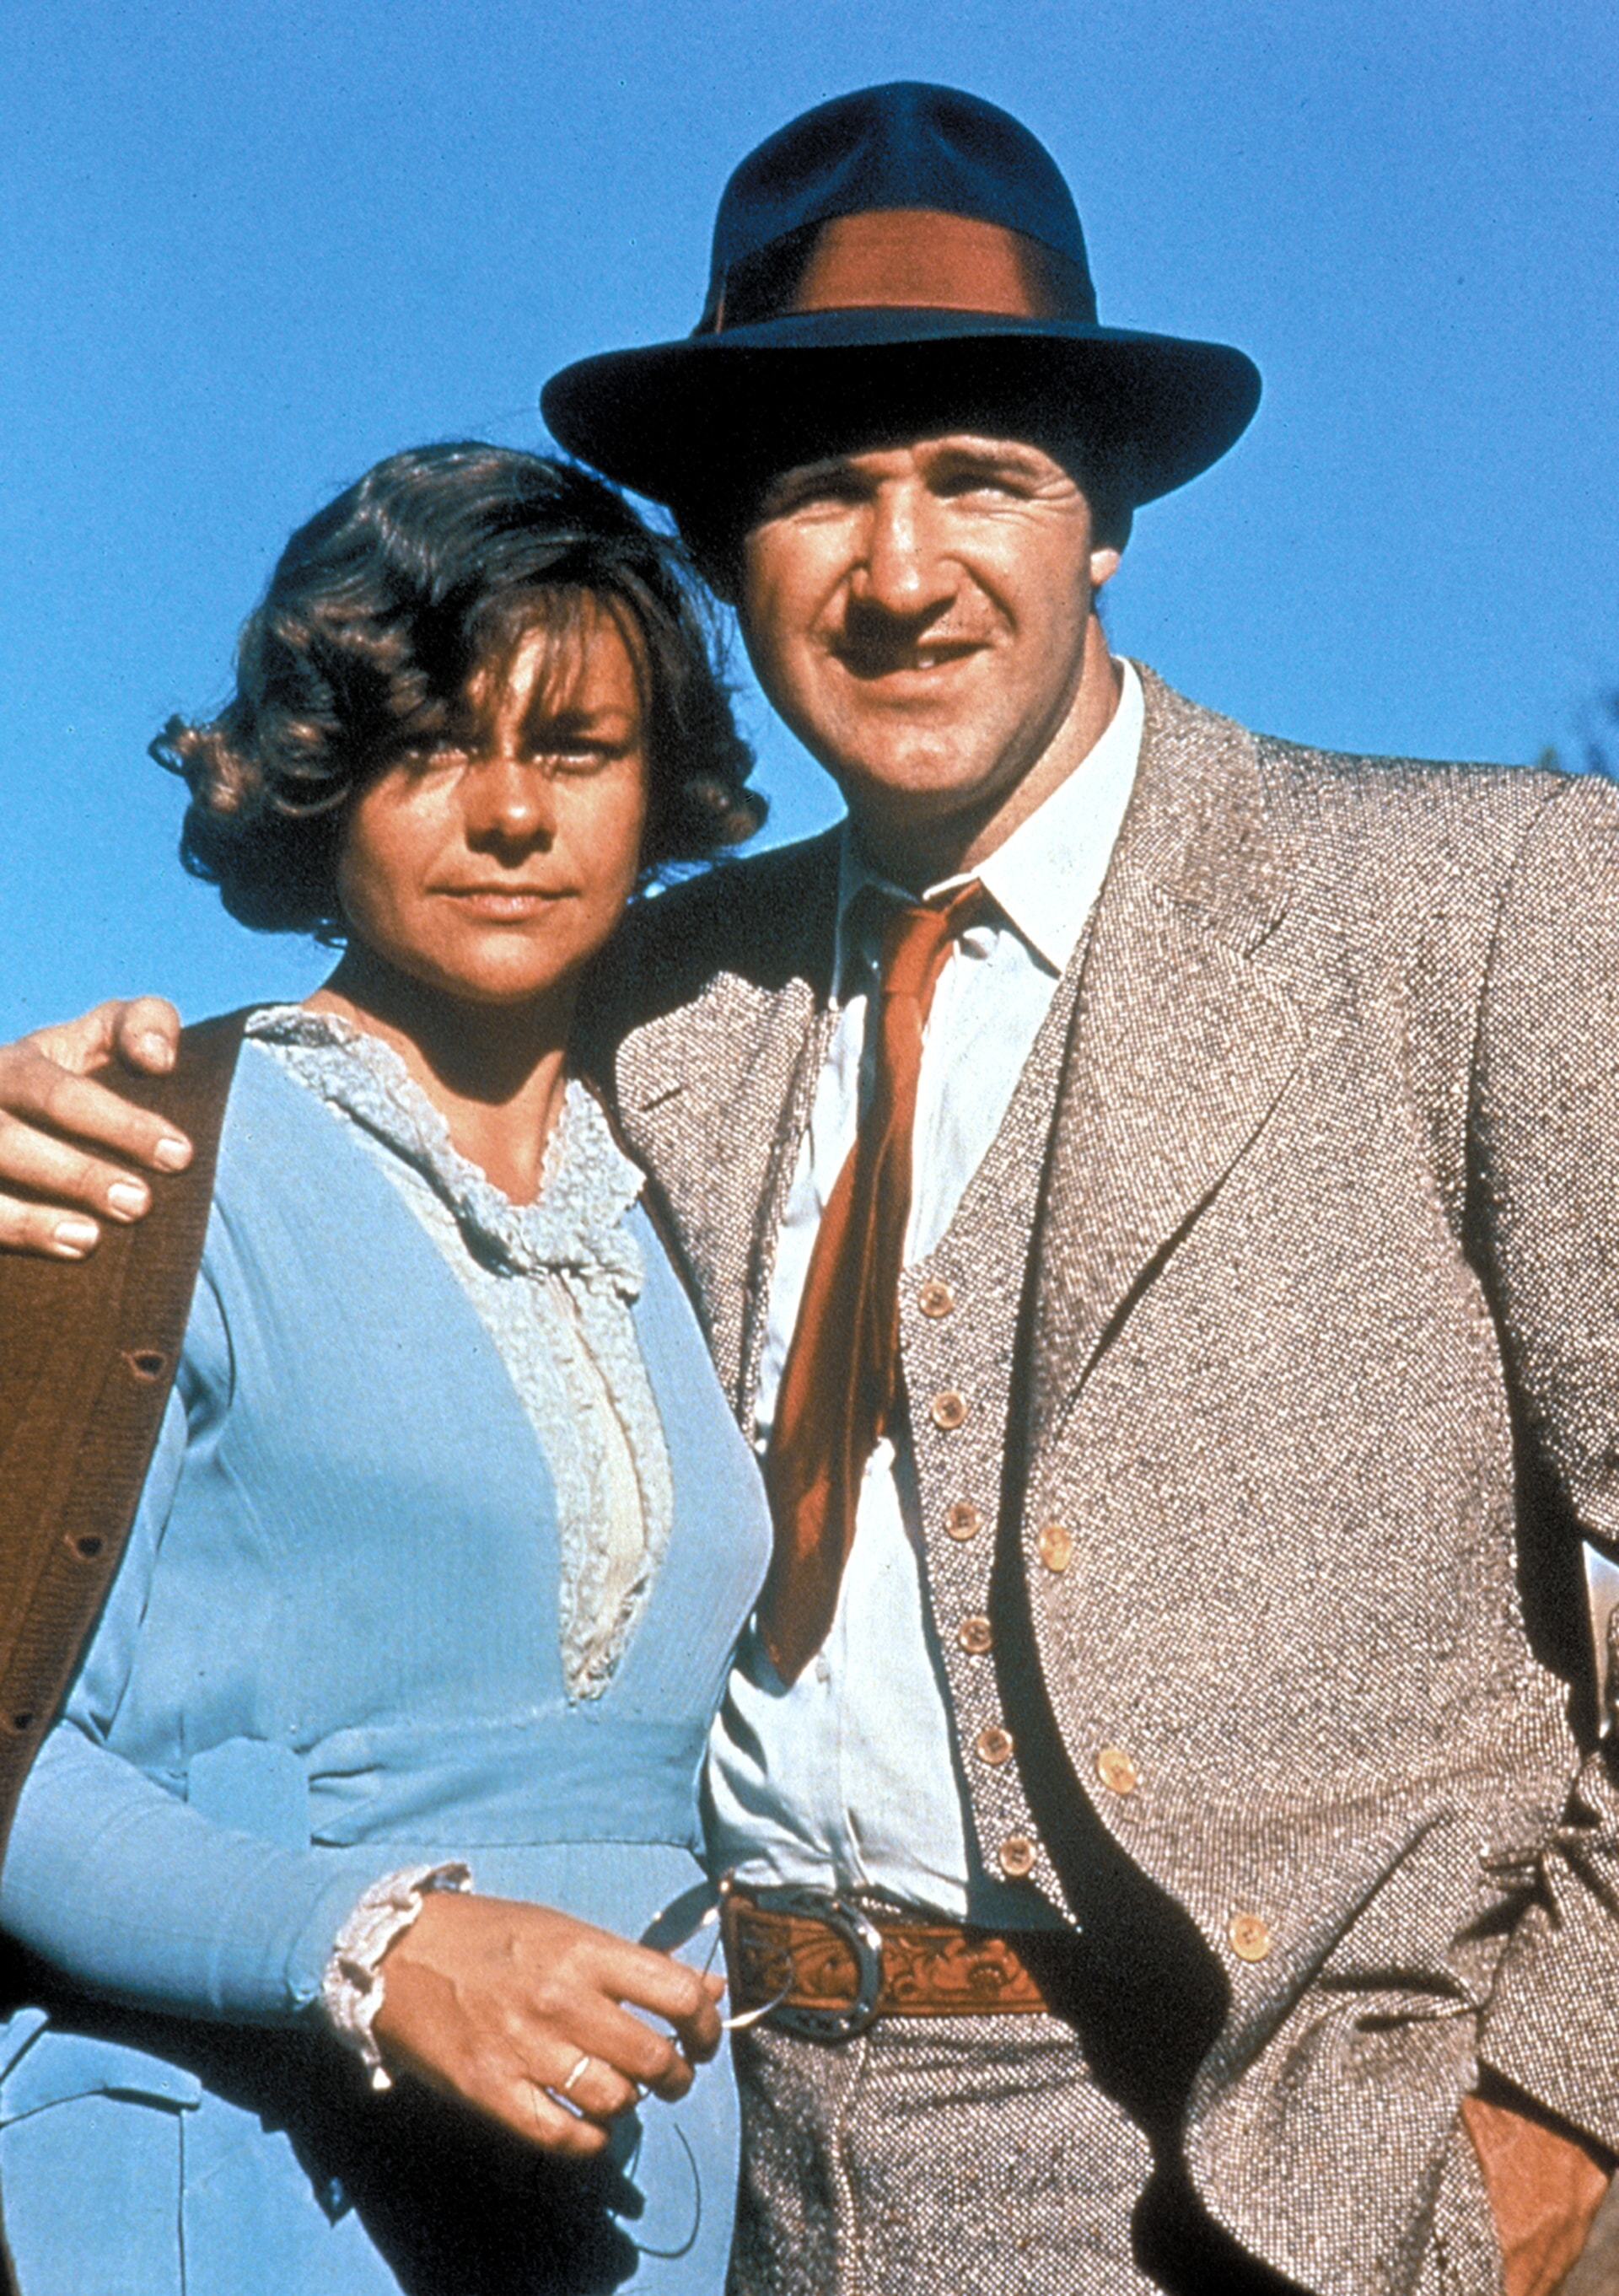 estelle parsons in her oscar winning role as blance in bonnie and clyde, with co-star gene hackman